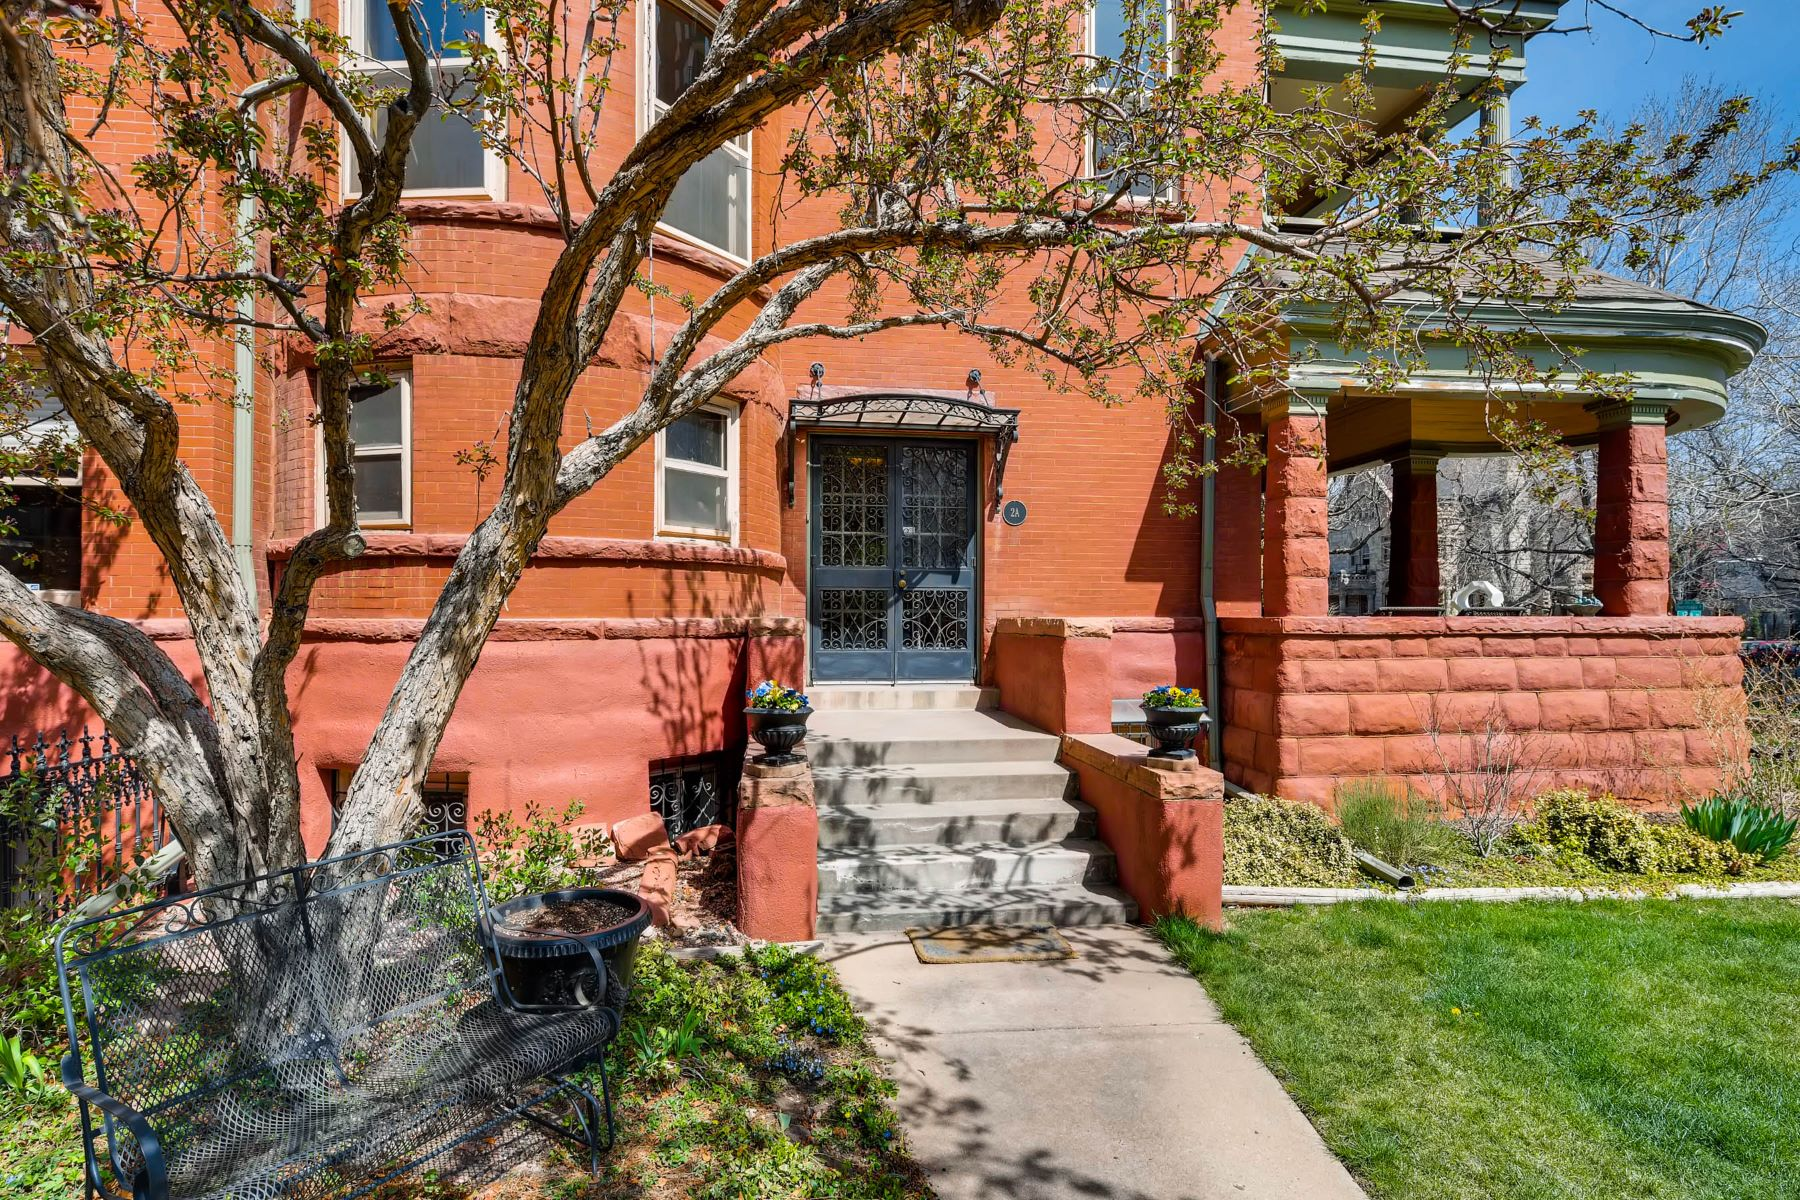 Single Family Home for Active at Pennborough Condos 1165 Pennsylvania Street Unit 2A Denver, Colorado 80203 United States